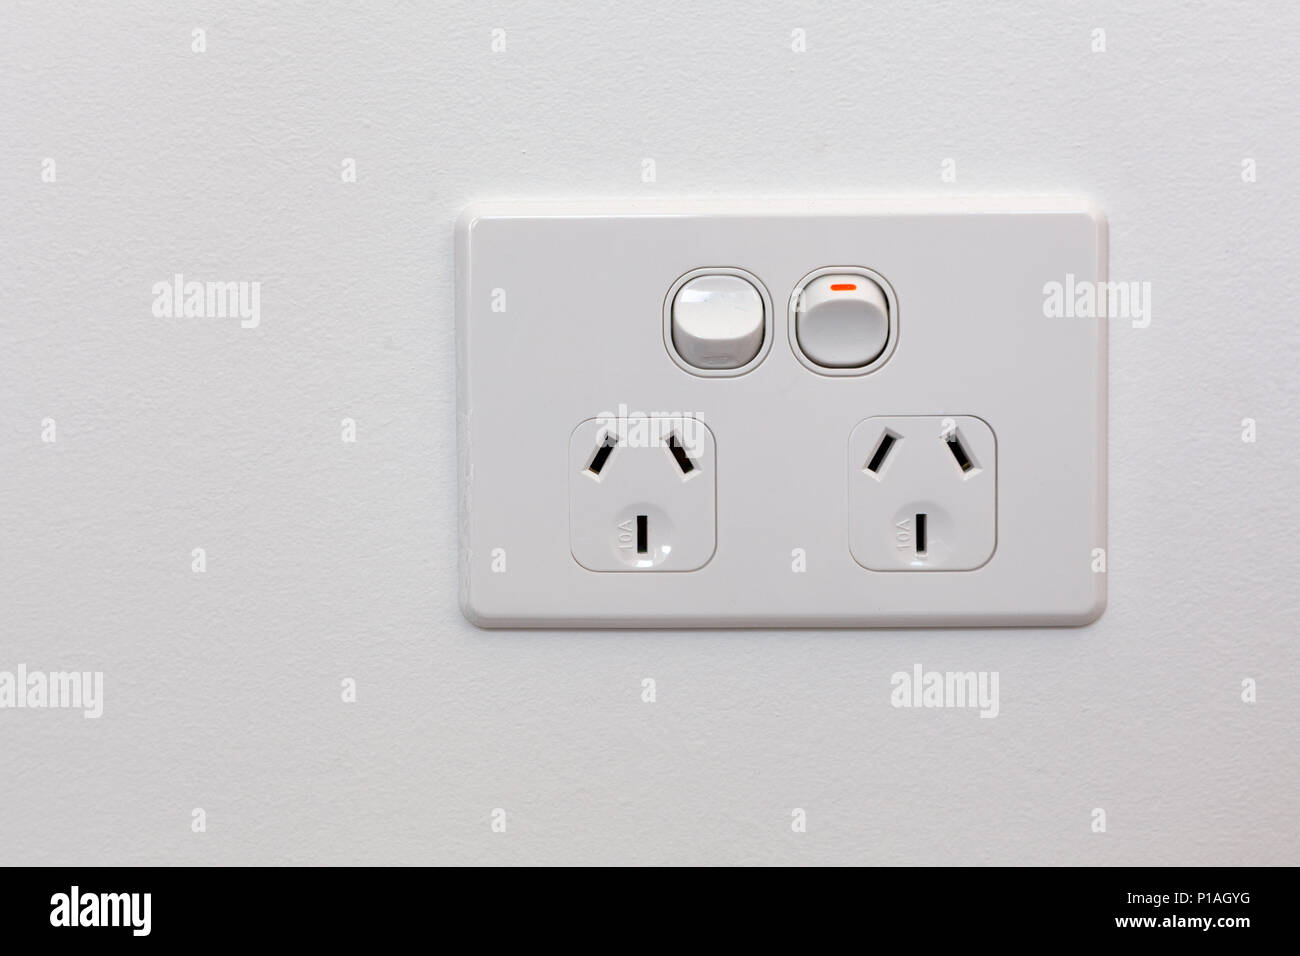 Wall Socket House Stock Photos & Wall Socket House Stock Images - Alamy